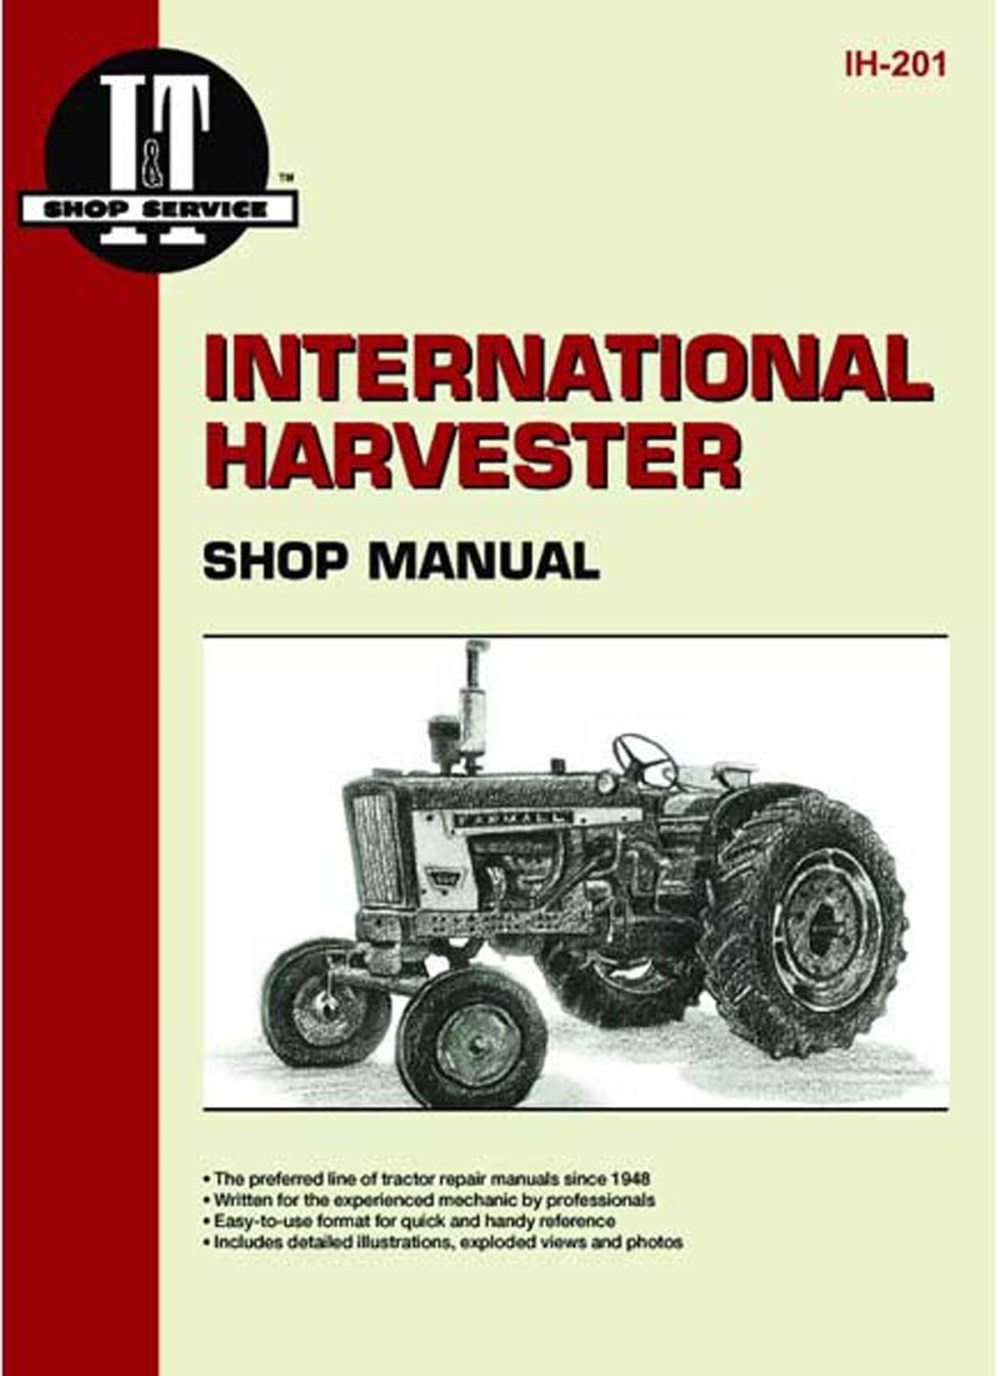 medium resolution of i t shop service manual case ih parts case ih tractor front fenders kioti tractor front axle oil